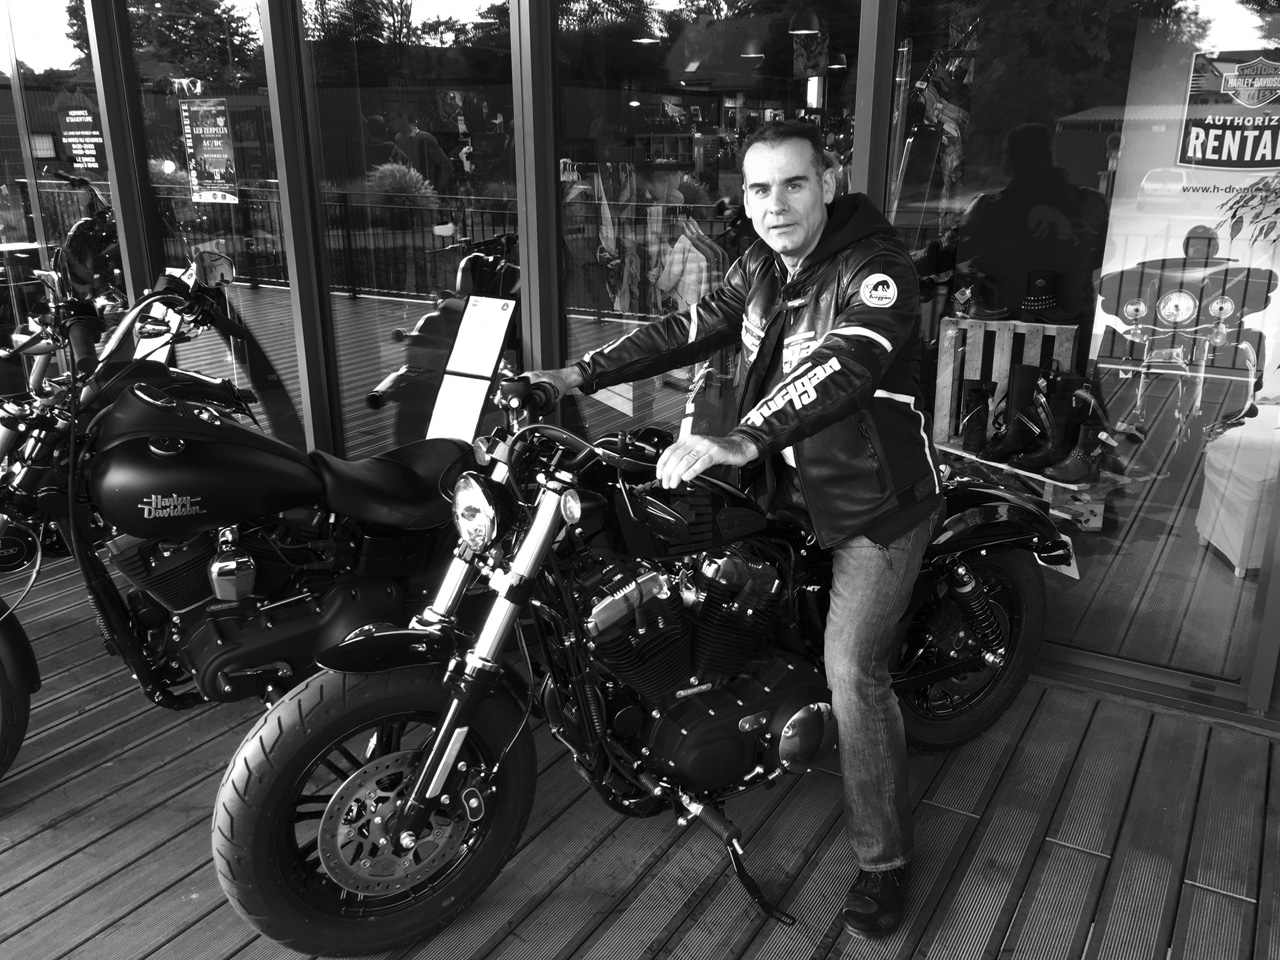 Jean-claude et son Forty Eight Harley Davidson